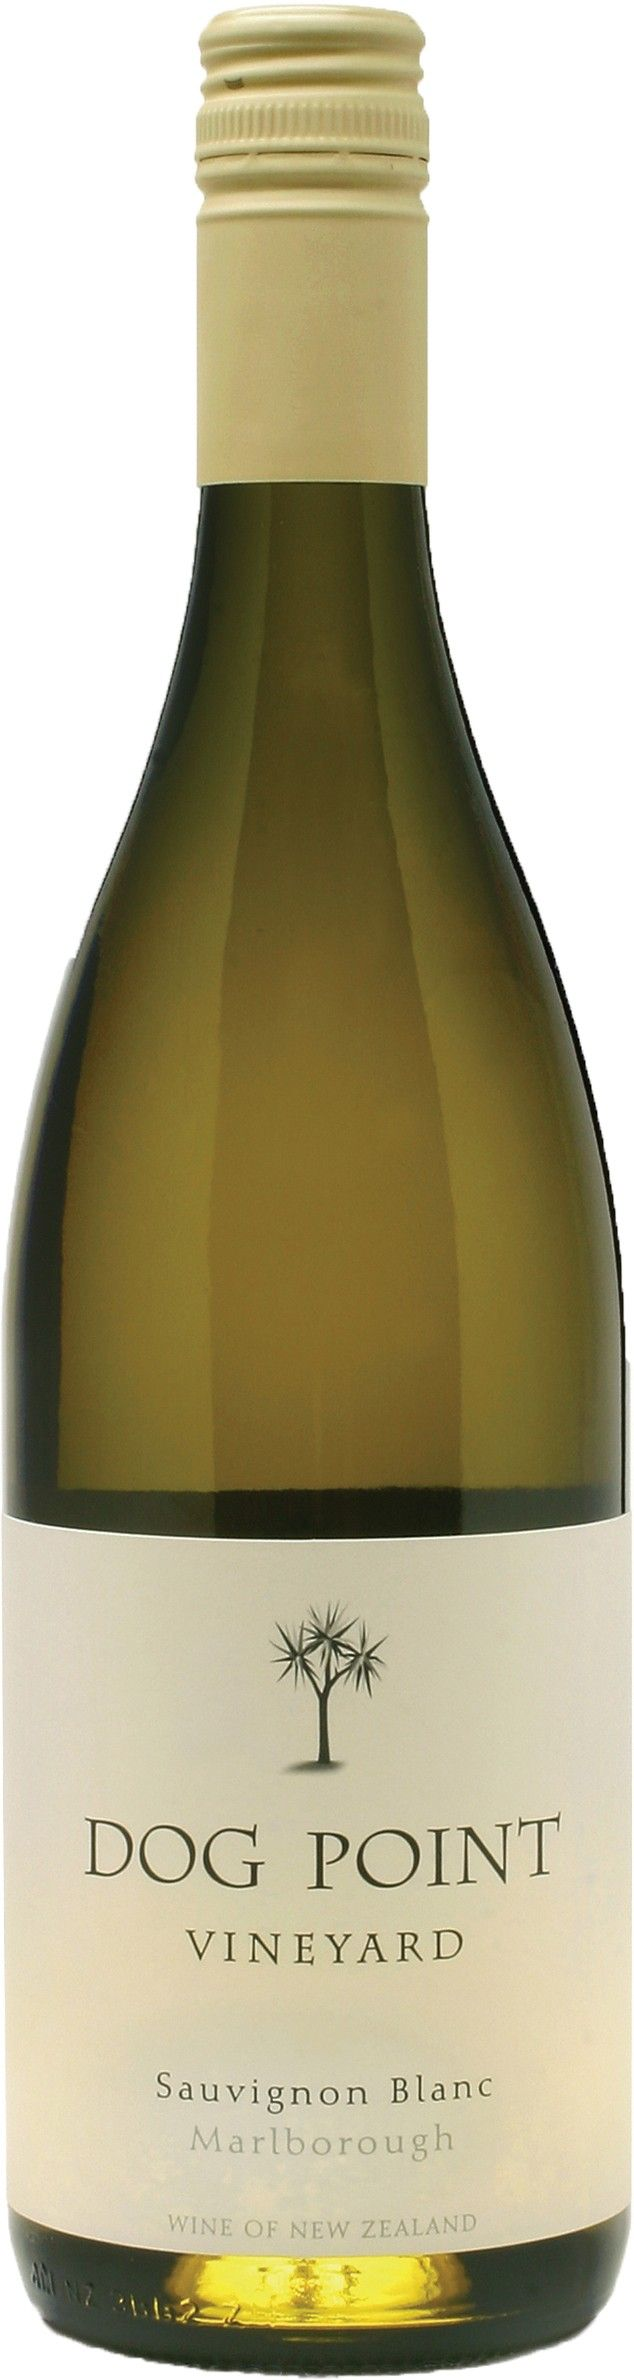 Dog Point Vineyard Sauvignon Blanc 750 mL